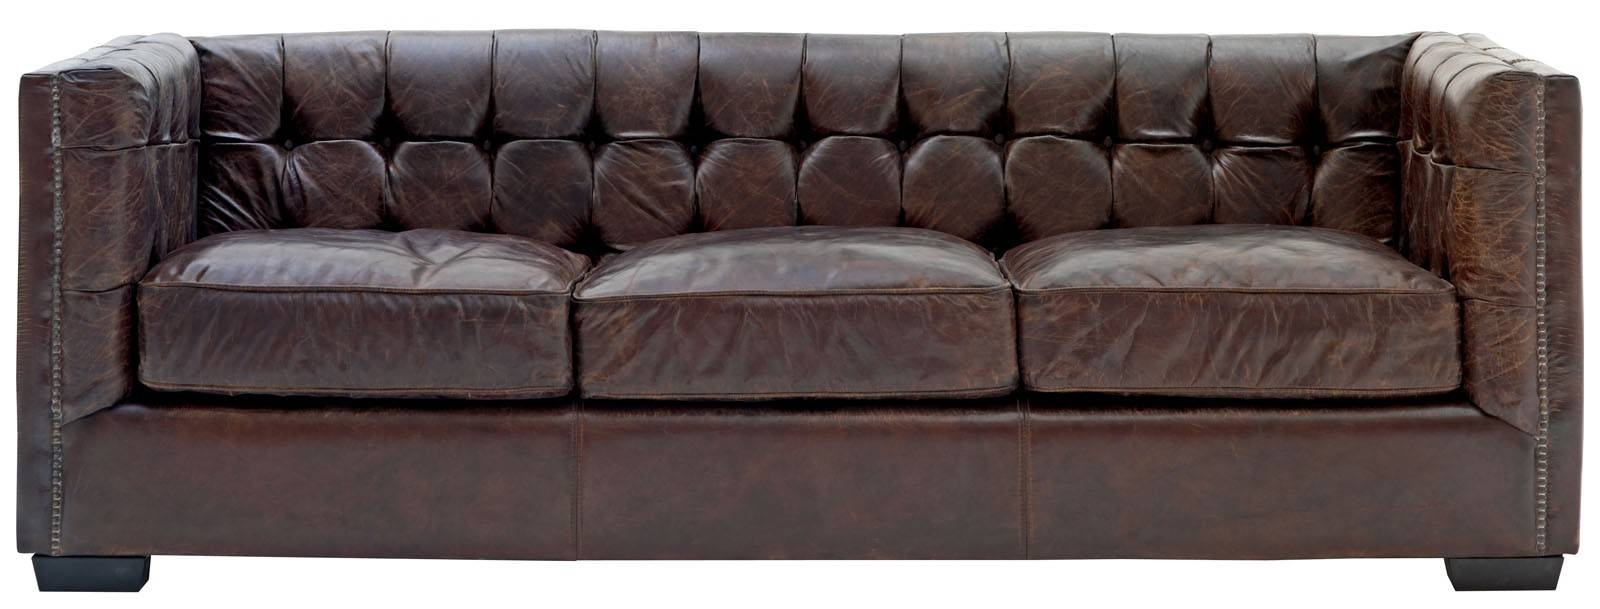 2017 Best of Leather Sofas